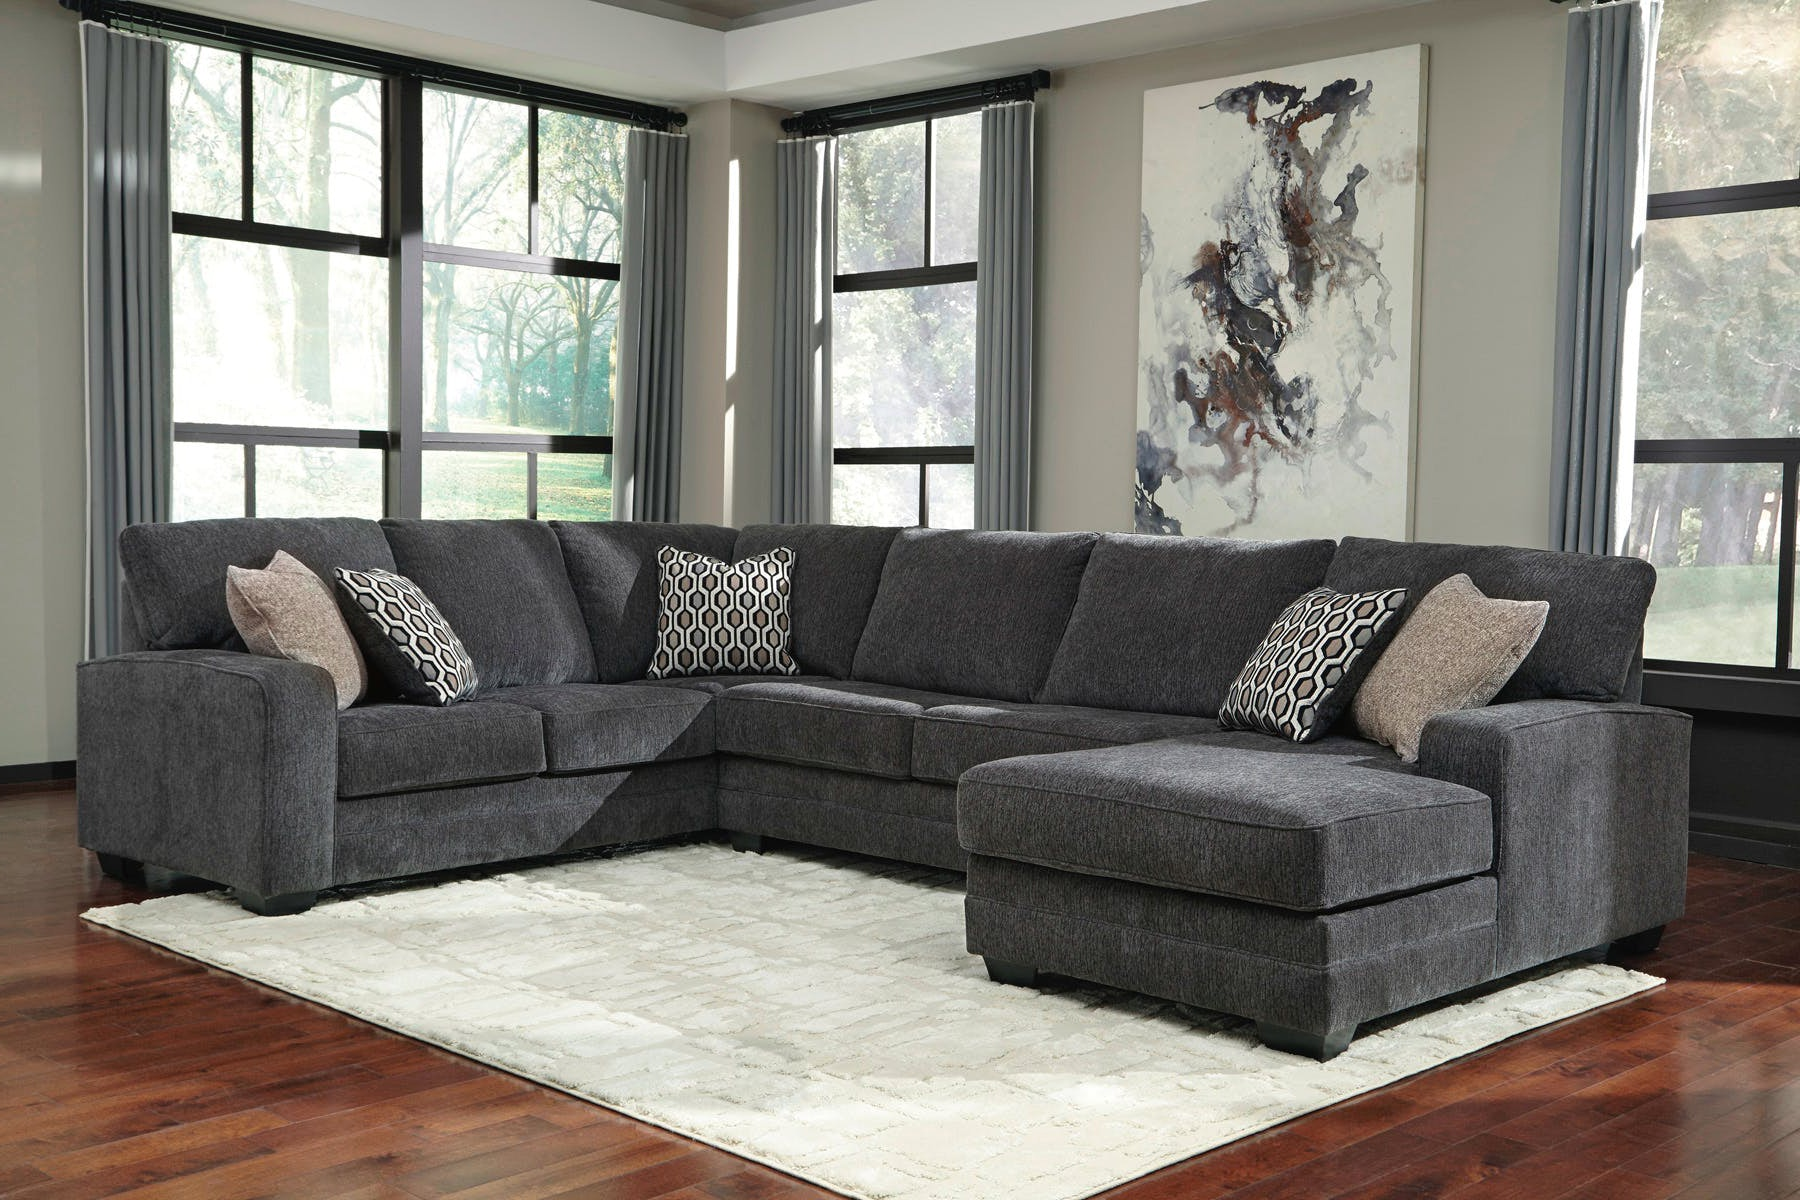 Signature Design By Ashley Living Room Tracling Right Chaise Sectional  150373   Furniture Fair   Cincinnati U0026 Dayton OH And Northern KY